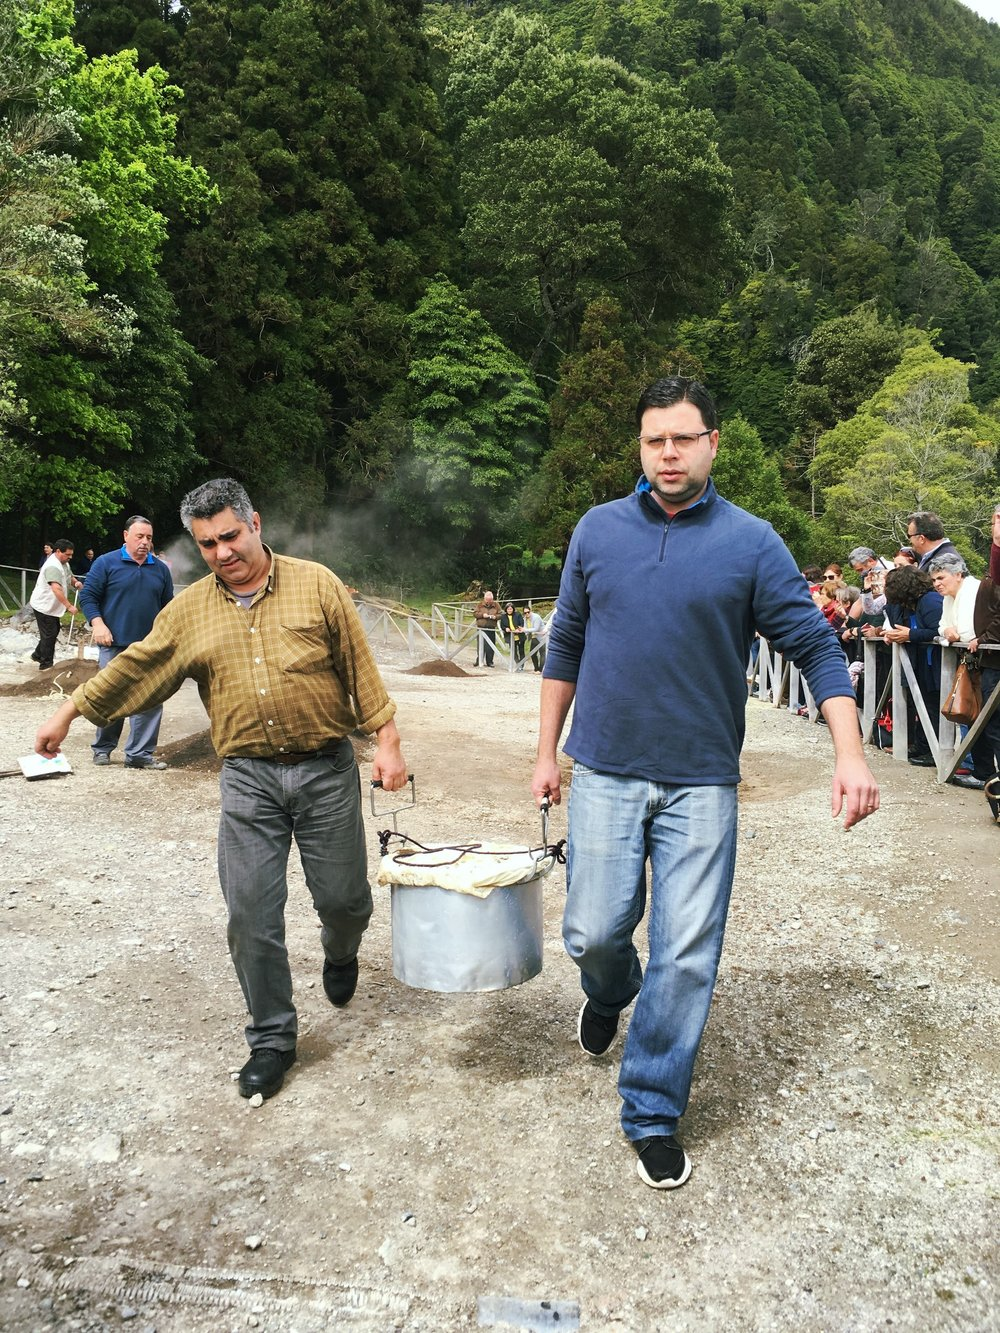 CONDÉ NAST TRAVELER: Making Volcano-Cooked Cozido in the Azores